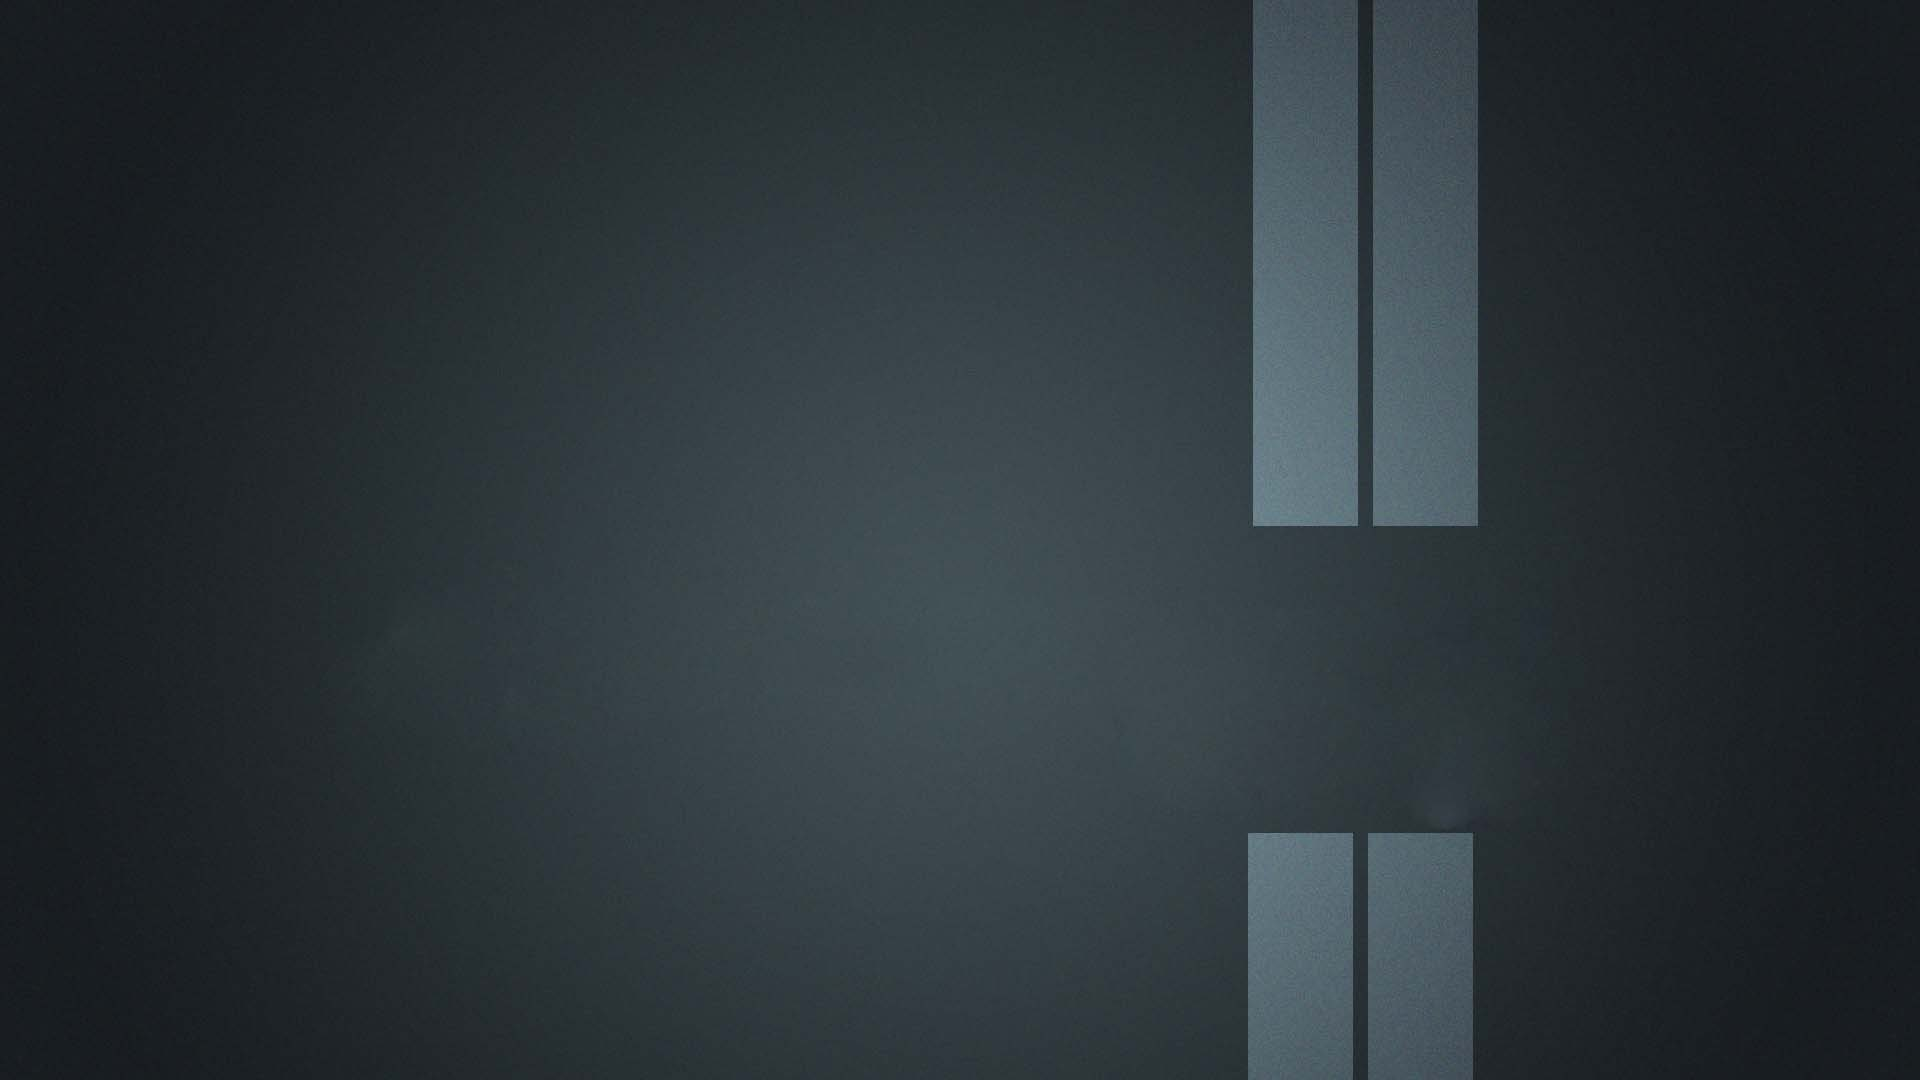 1920x1080 Desktop Backgrounds Plain